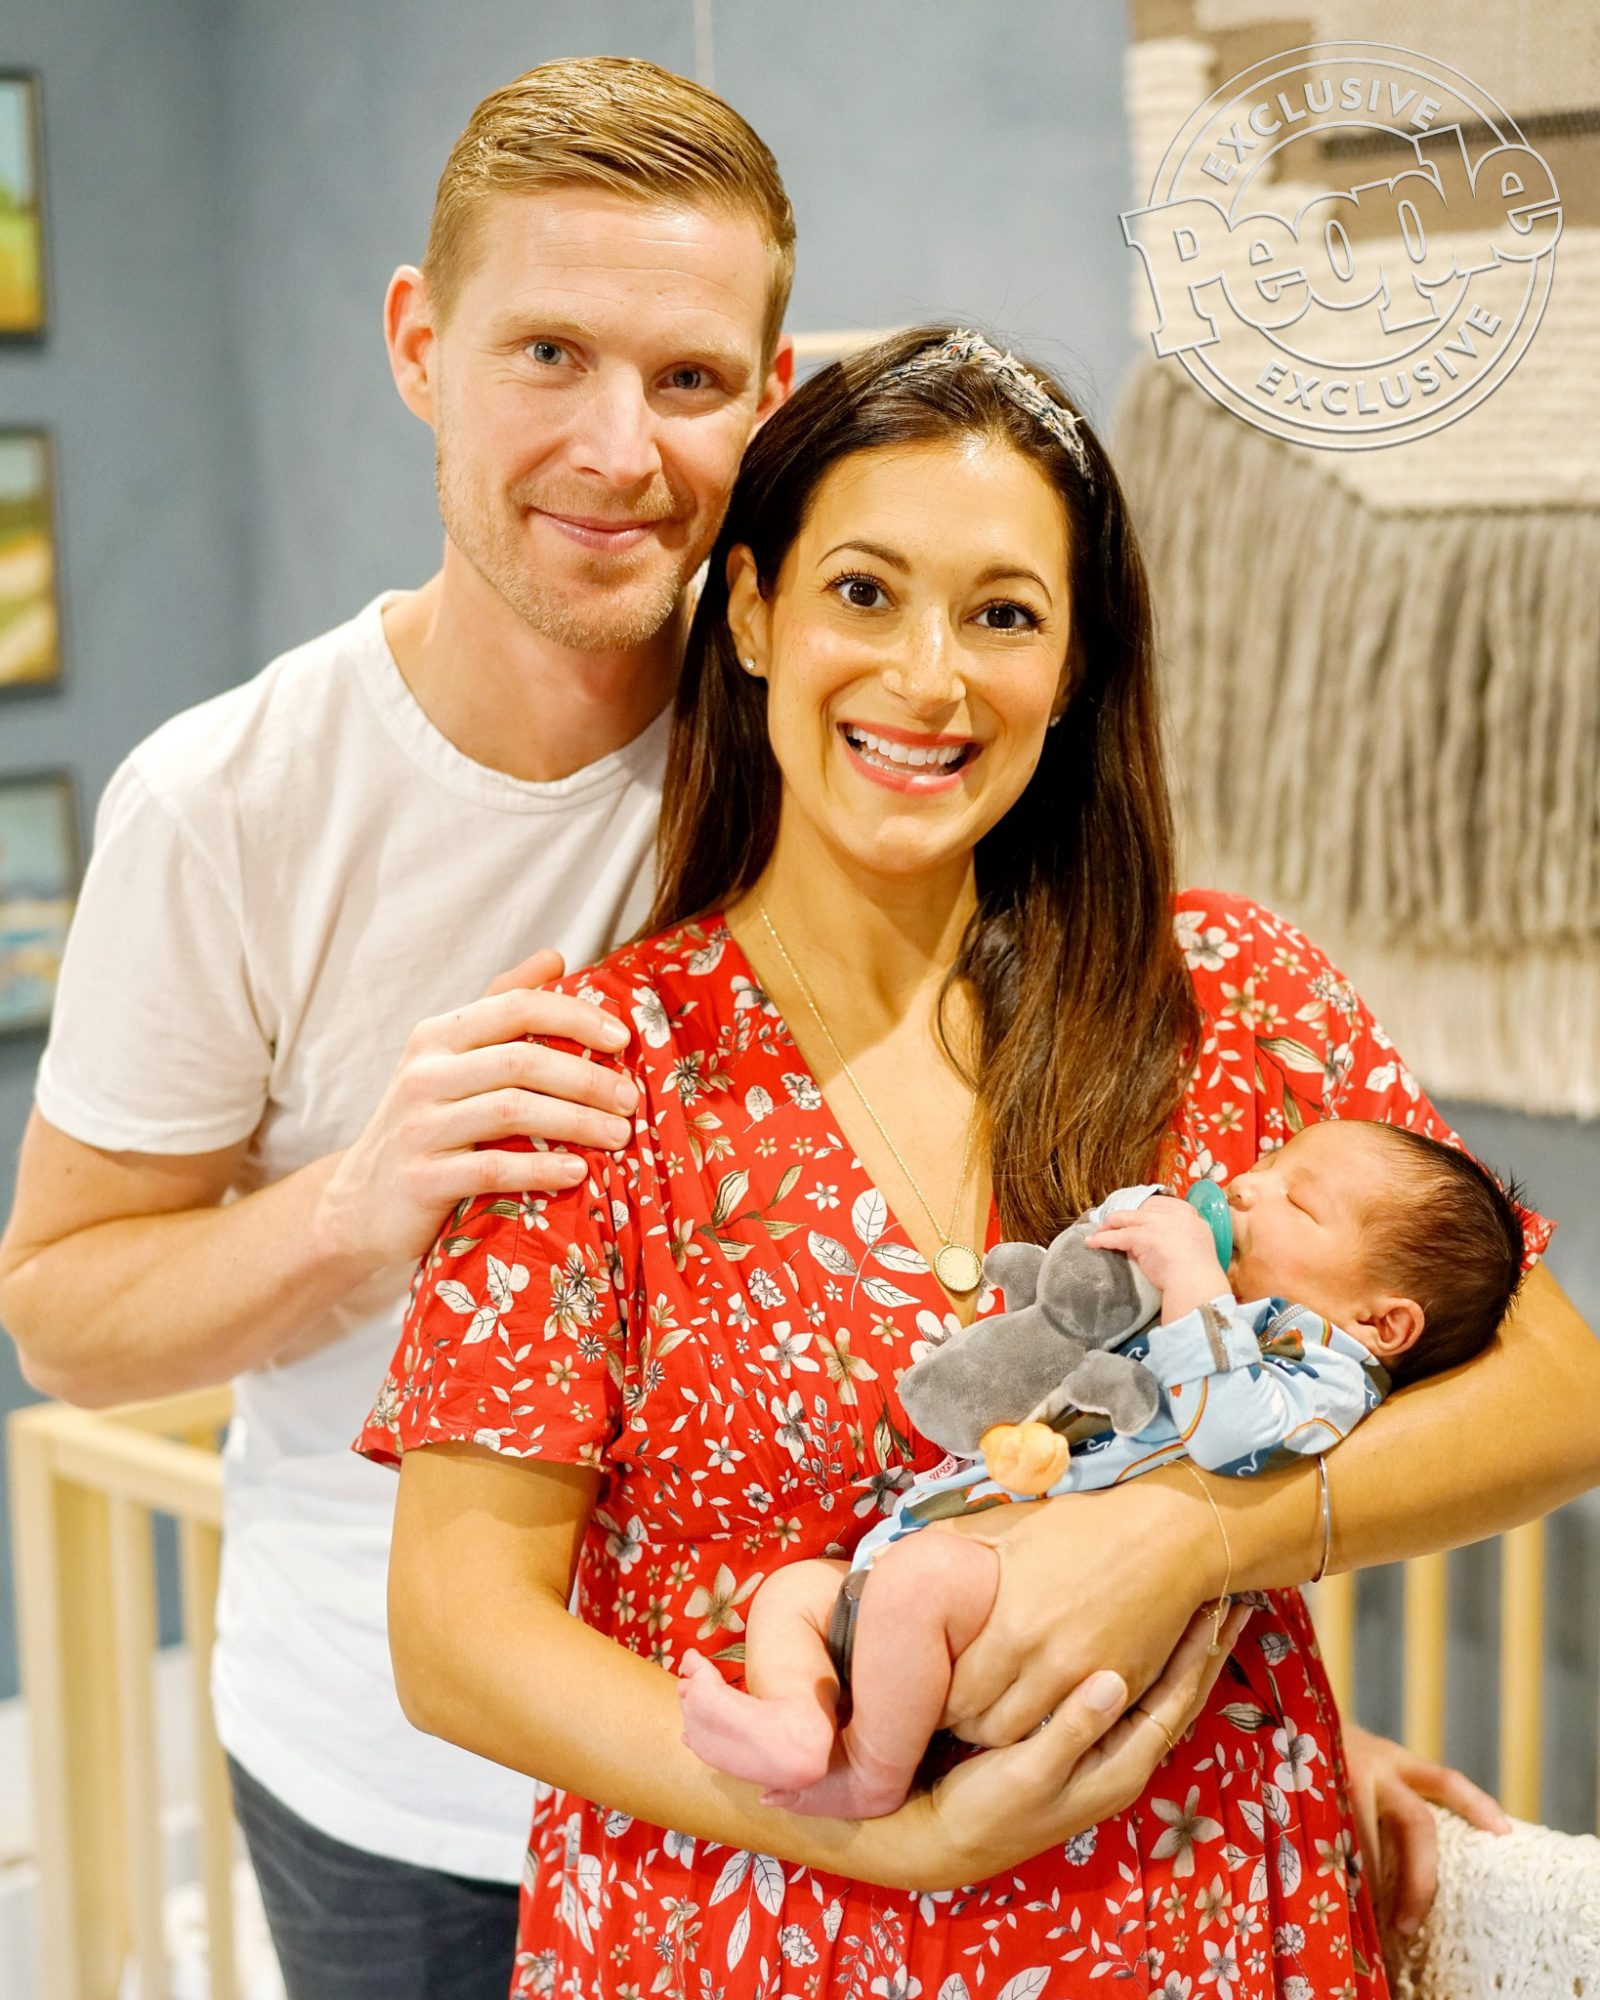 Angelique Cabral Welcomes Son Alden Presley - and Reveals the 'Special Meaning' Behind His Name